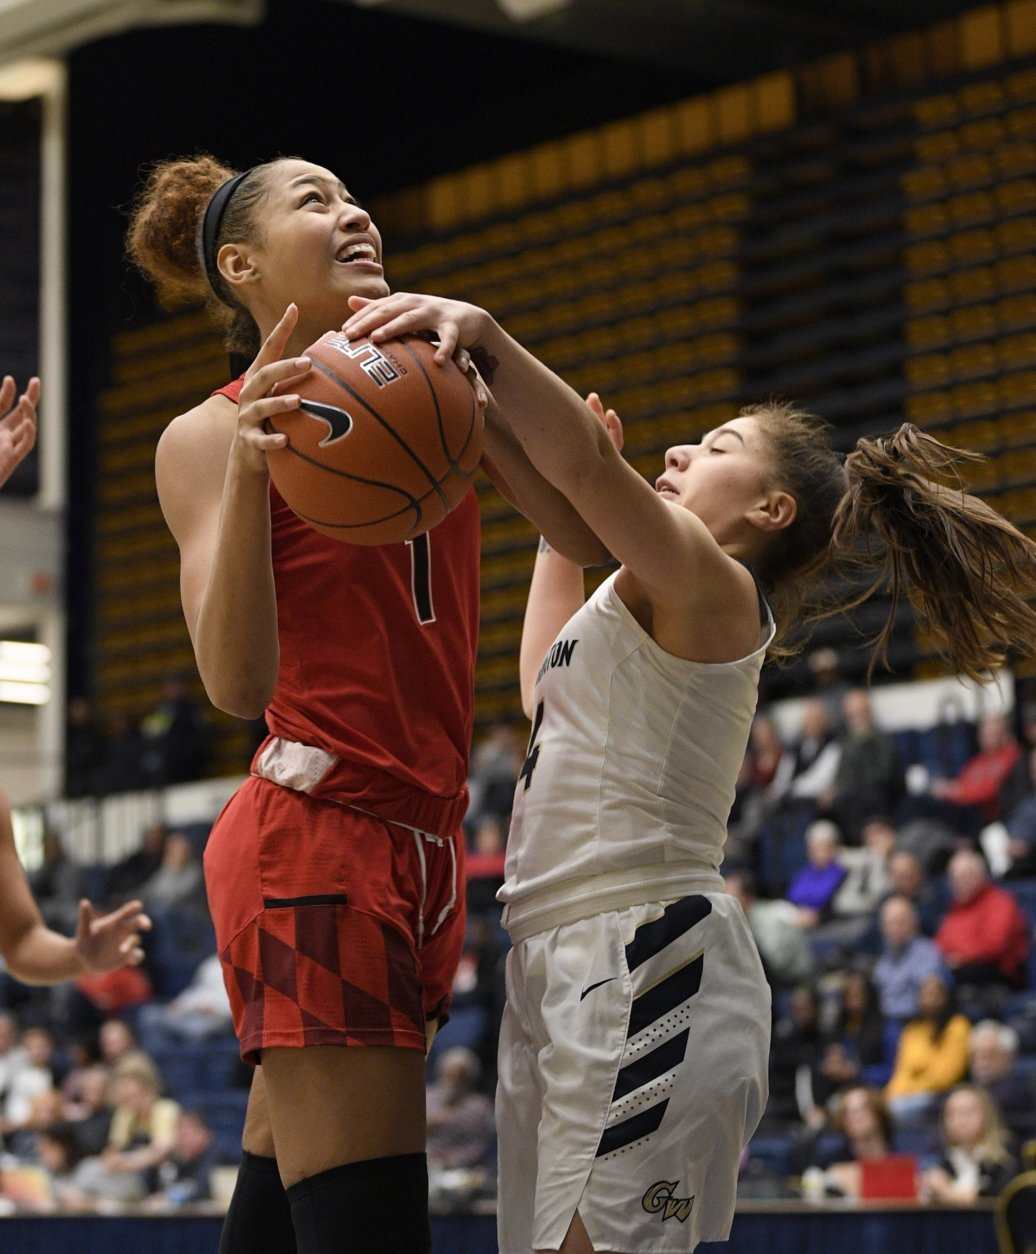 George Washington guard Lexus Levy, right, reaches in for the ball against Maryland forward Shakira Austin (1) during the second half of an NCAA college basketball game, Wednesday, Nov. 14, 2018, in Washington. Maryland won 69-30. (AP Photo/Nick Wass)